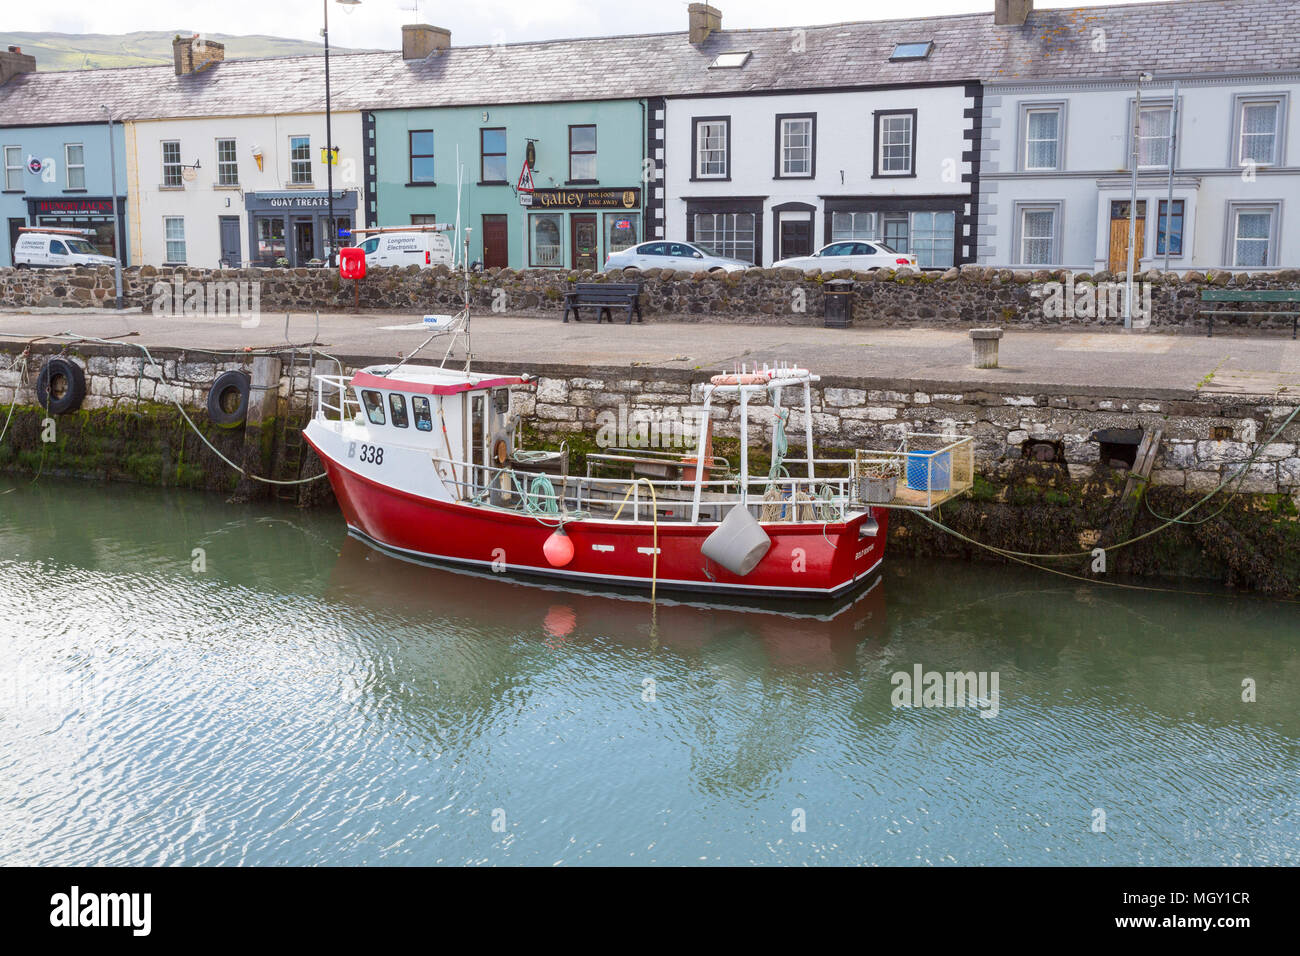 Carnlough, N. Ireland/United Kingdom - June 2, 2015: In the harbor at Carnlough in County Antrim sits a colorful boat on a day. - Stock Image